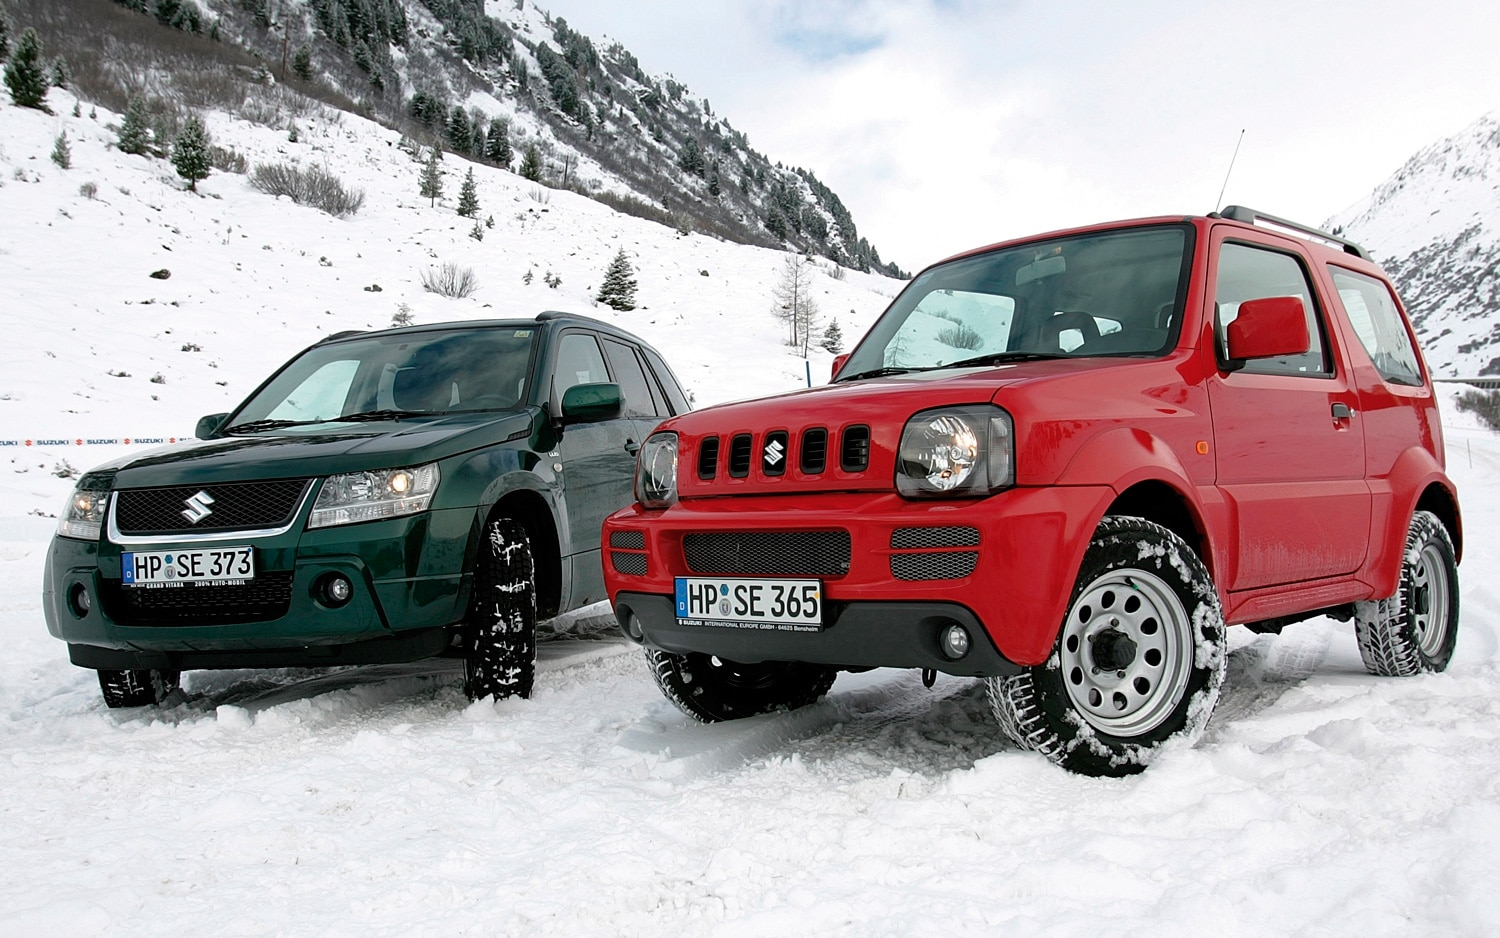 Suzuki Jimny And Grand Vitara In Snow1